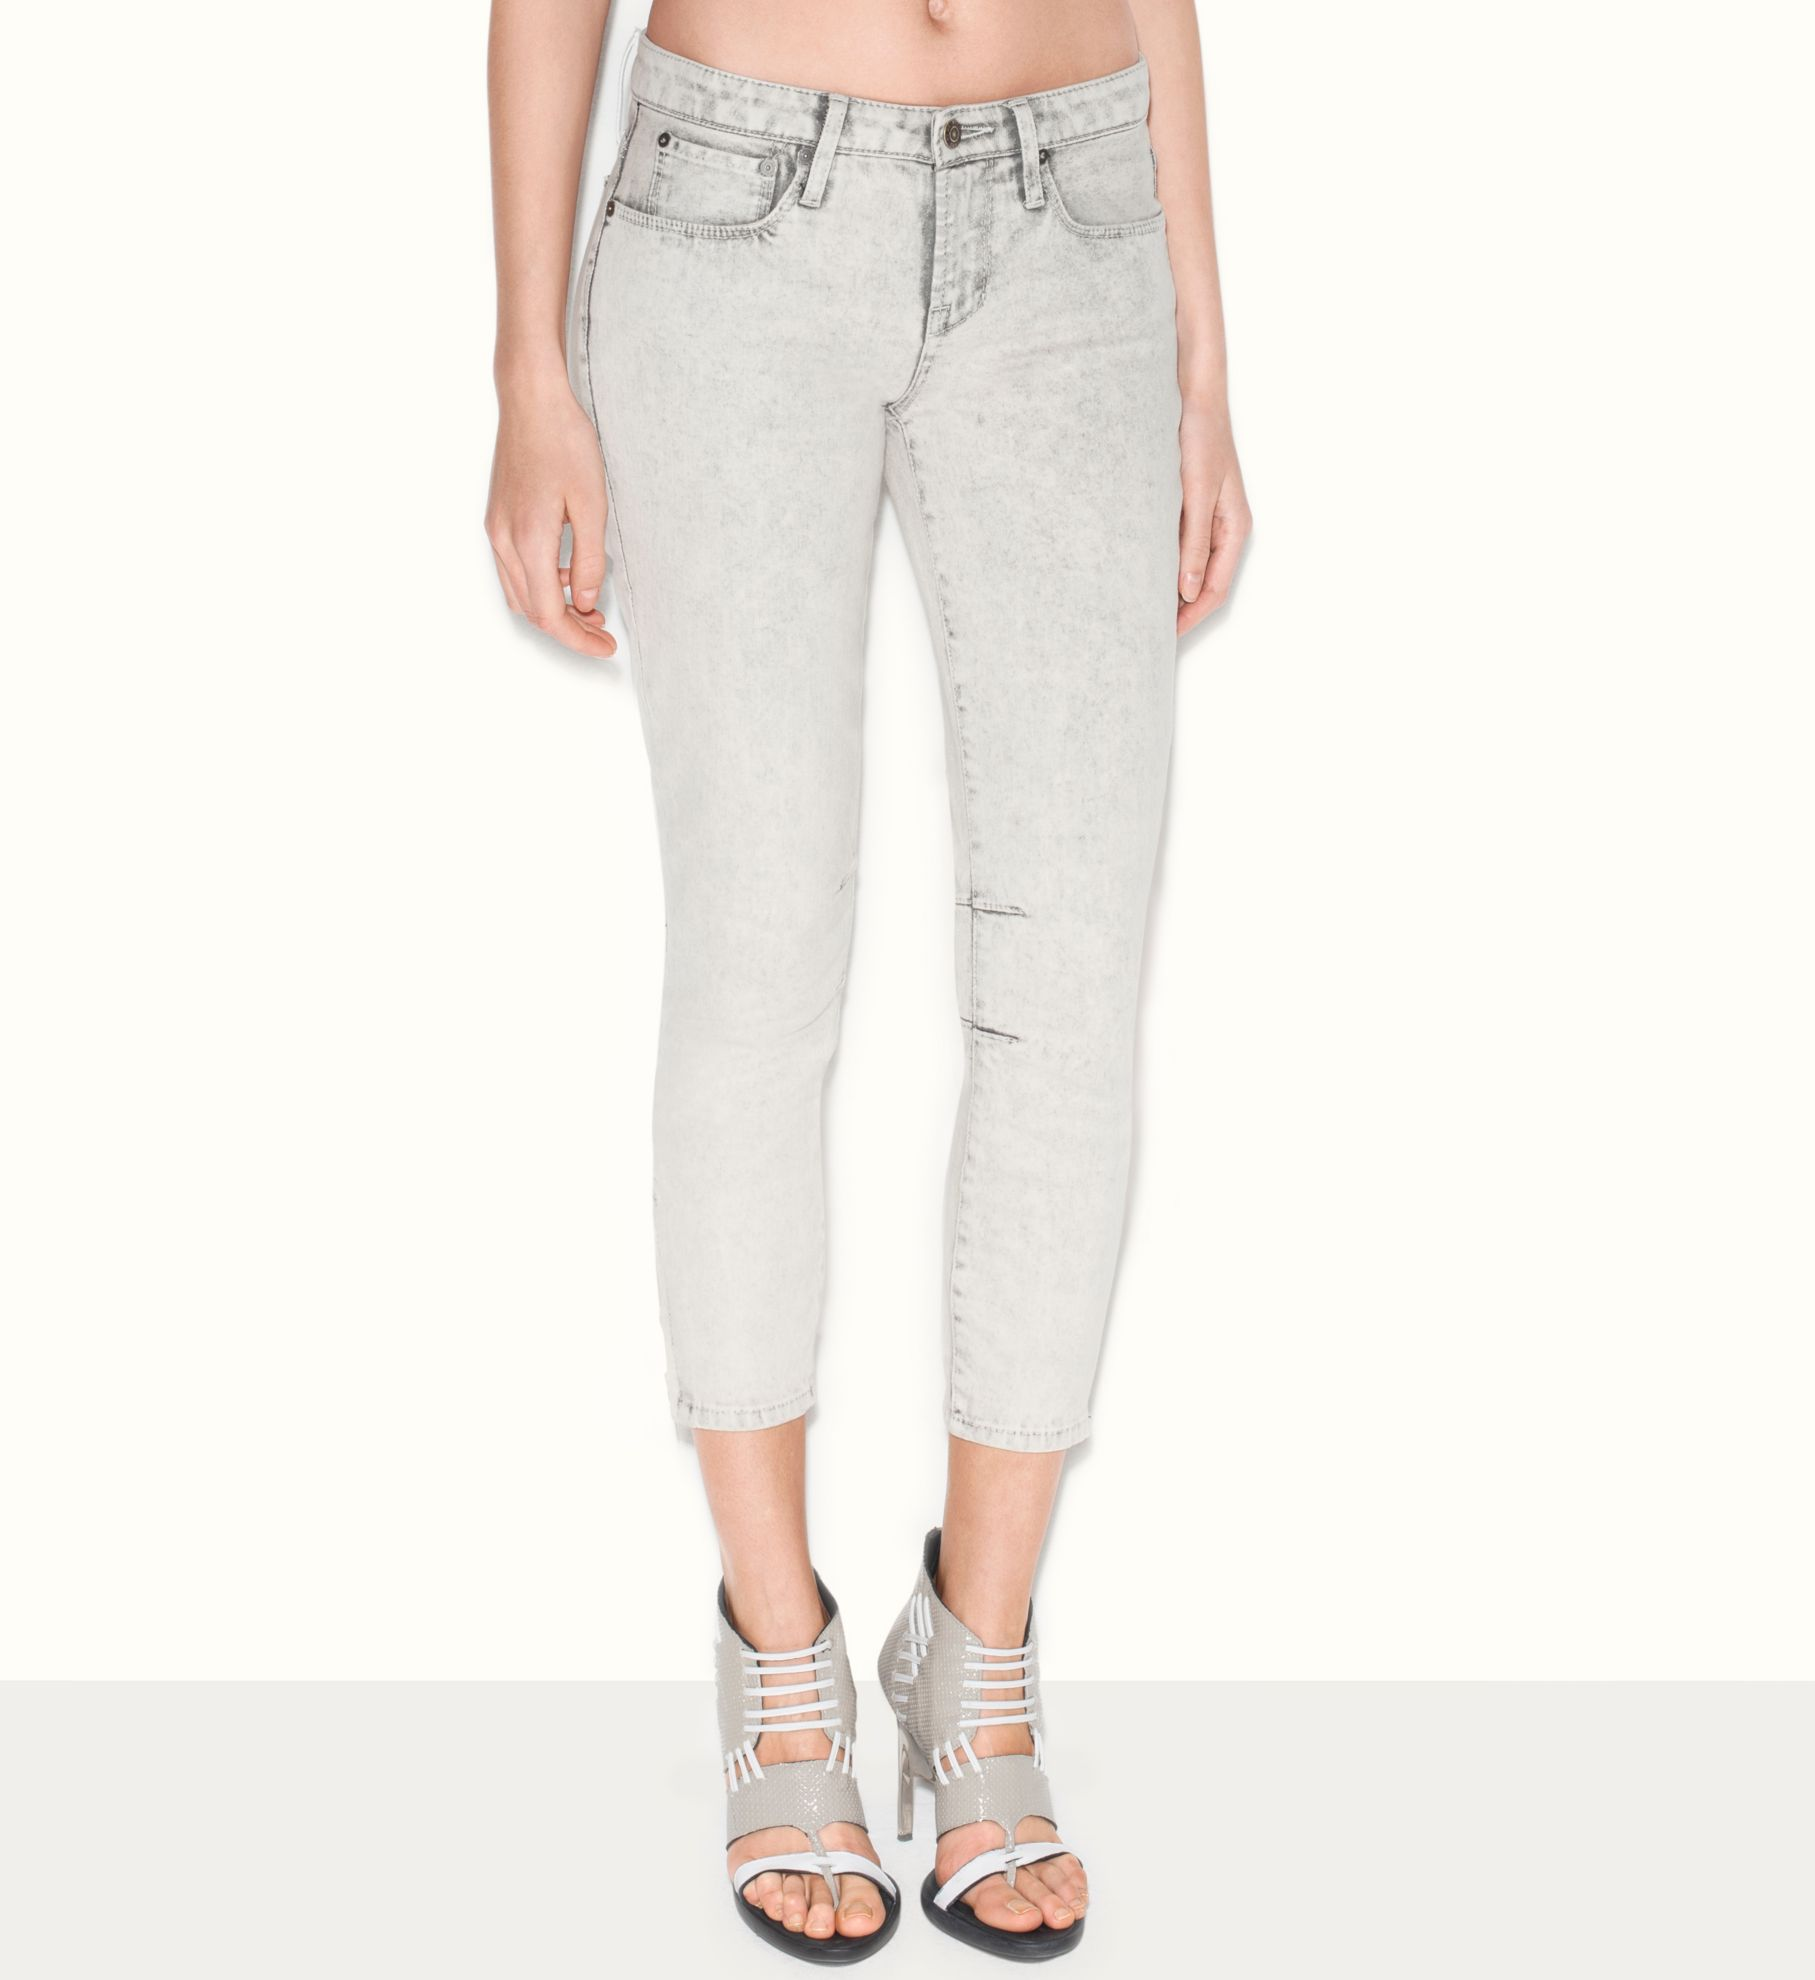 POWDER WASH PANT